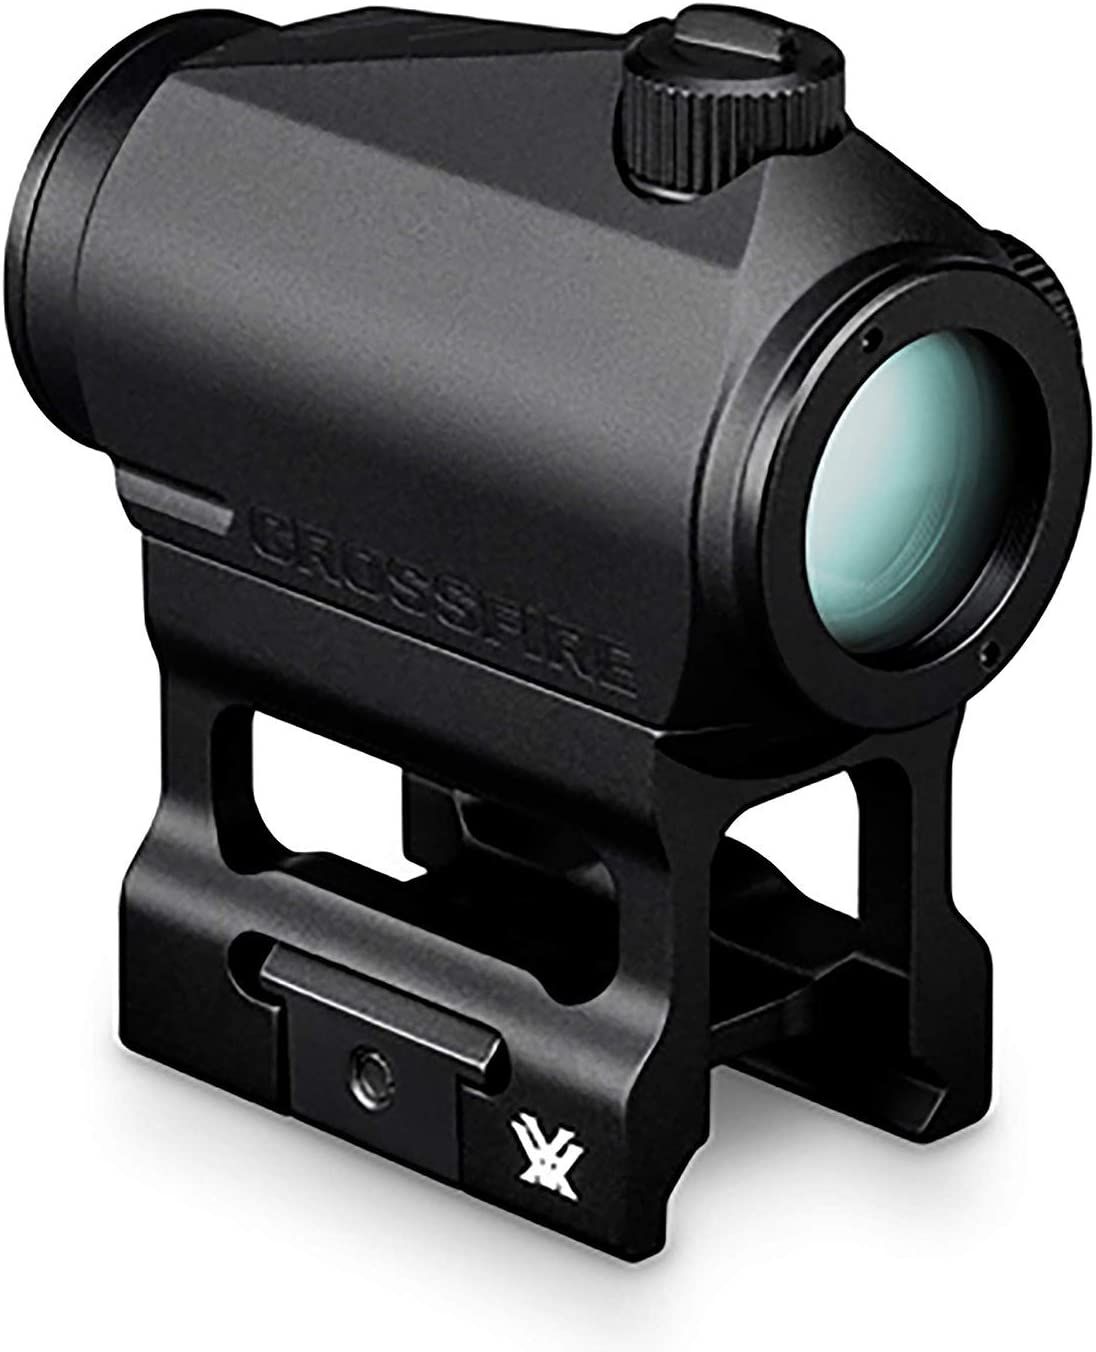 Top 10 Best Red Dot Sight Reviews in 2020 & Buying Guide 5